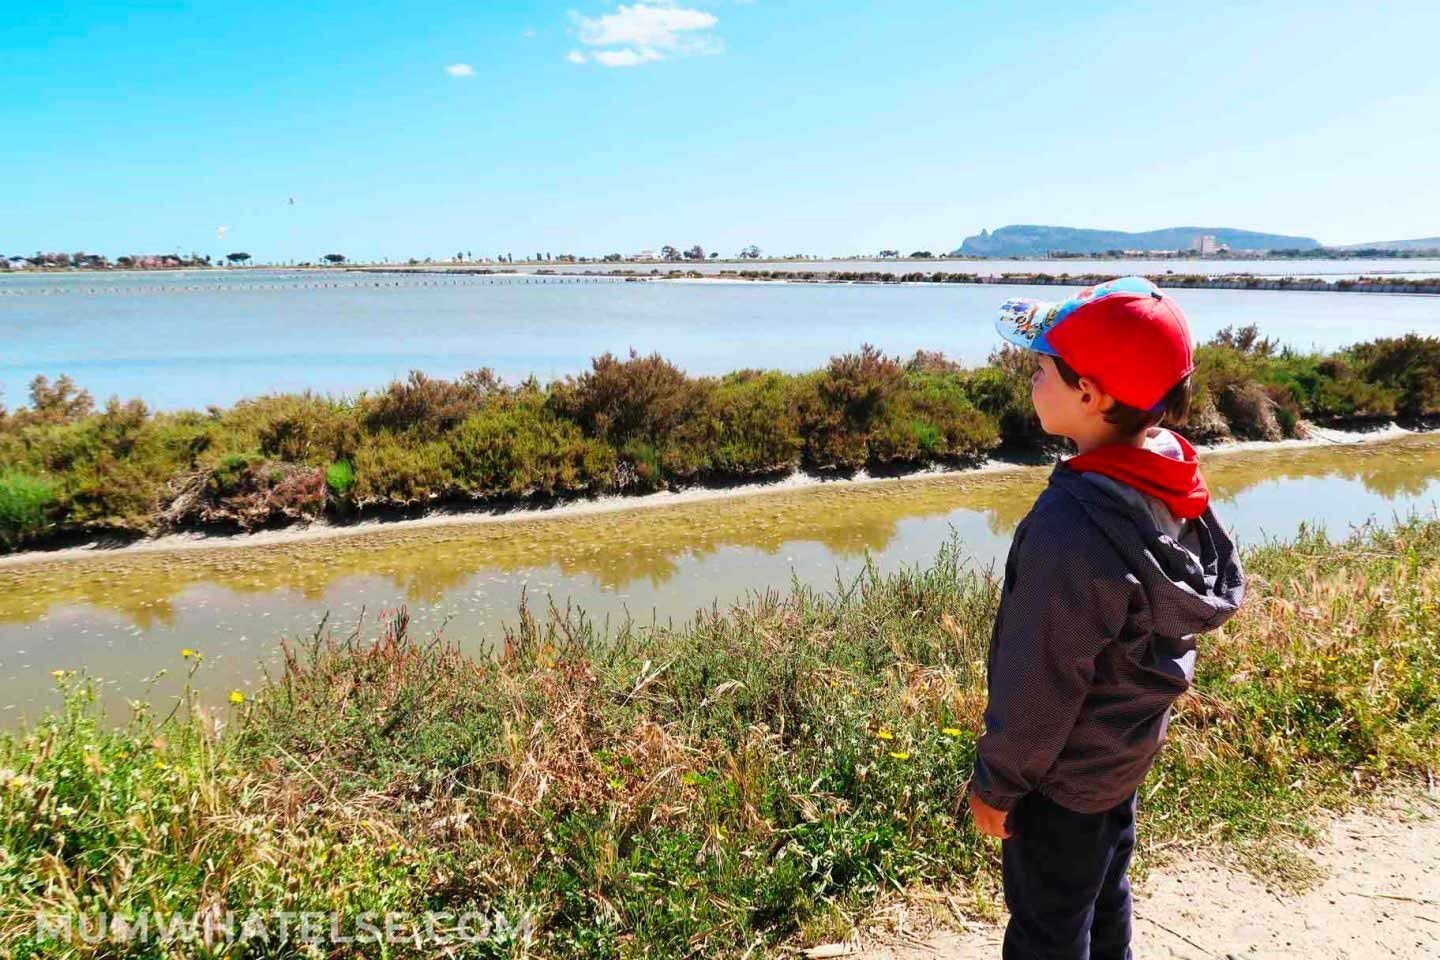 Discover the flamingo park in Cagliari, South Sardinia